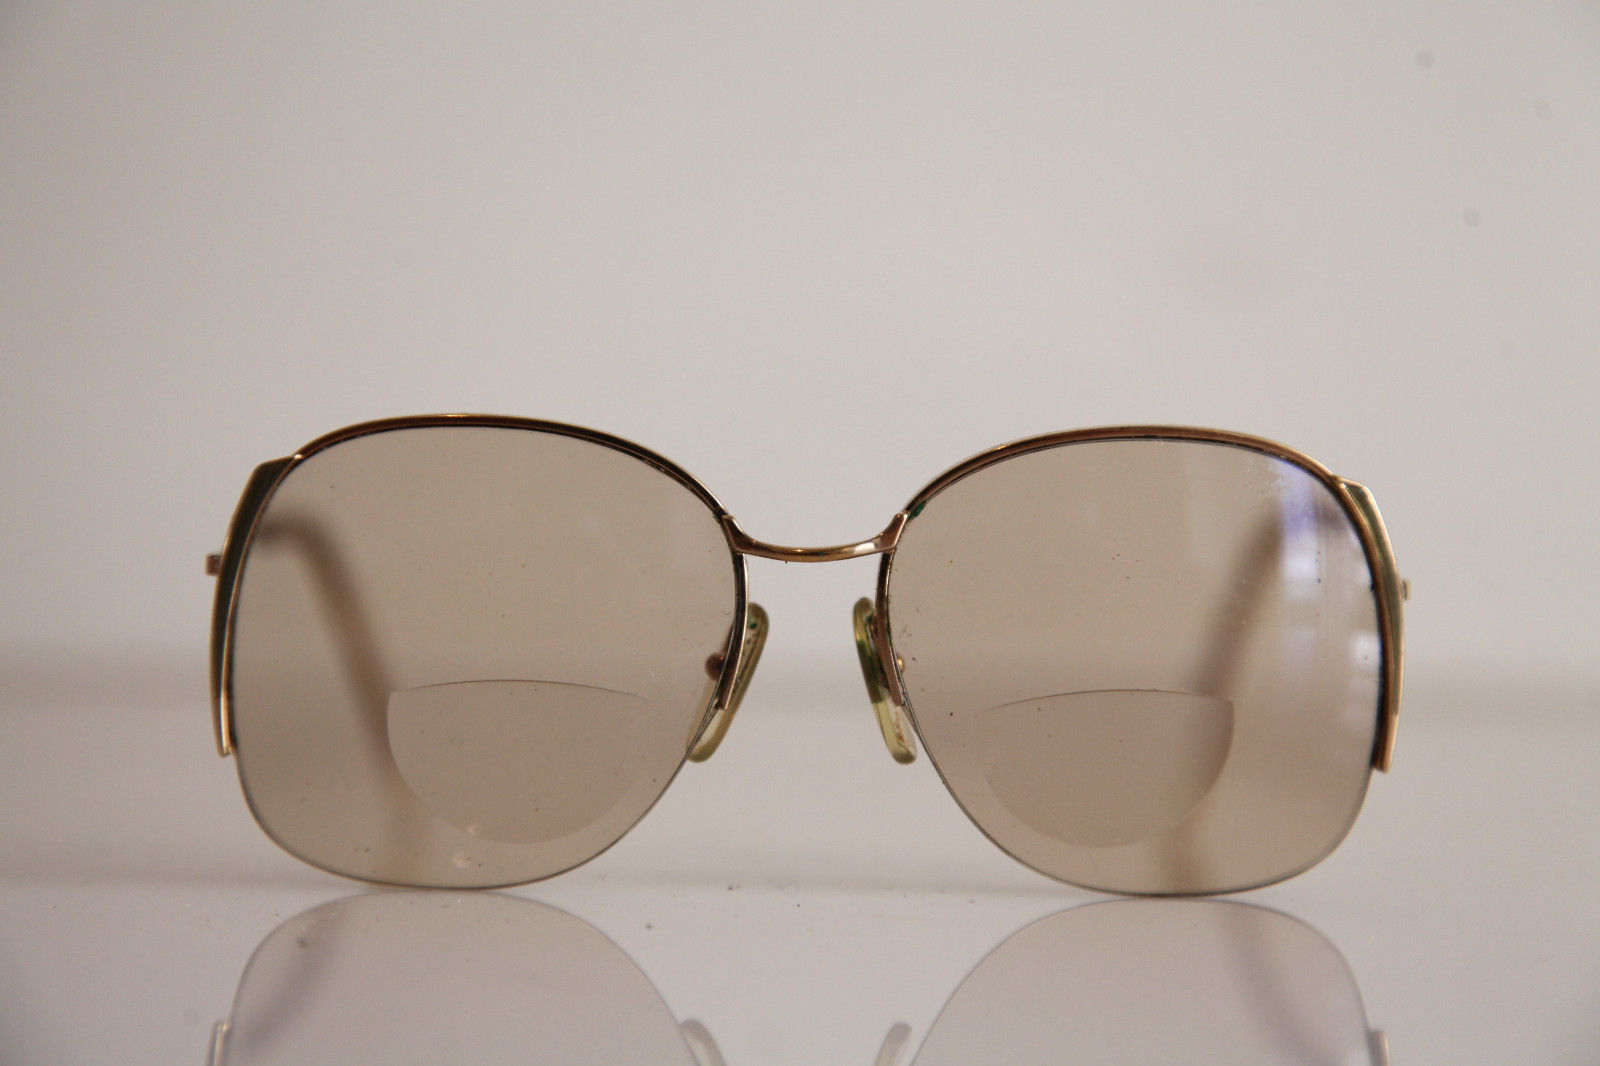 Eyewear, Gold Half Rimless Frame, RX-Able  Tinted Prescription lenses. image 1